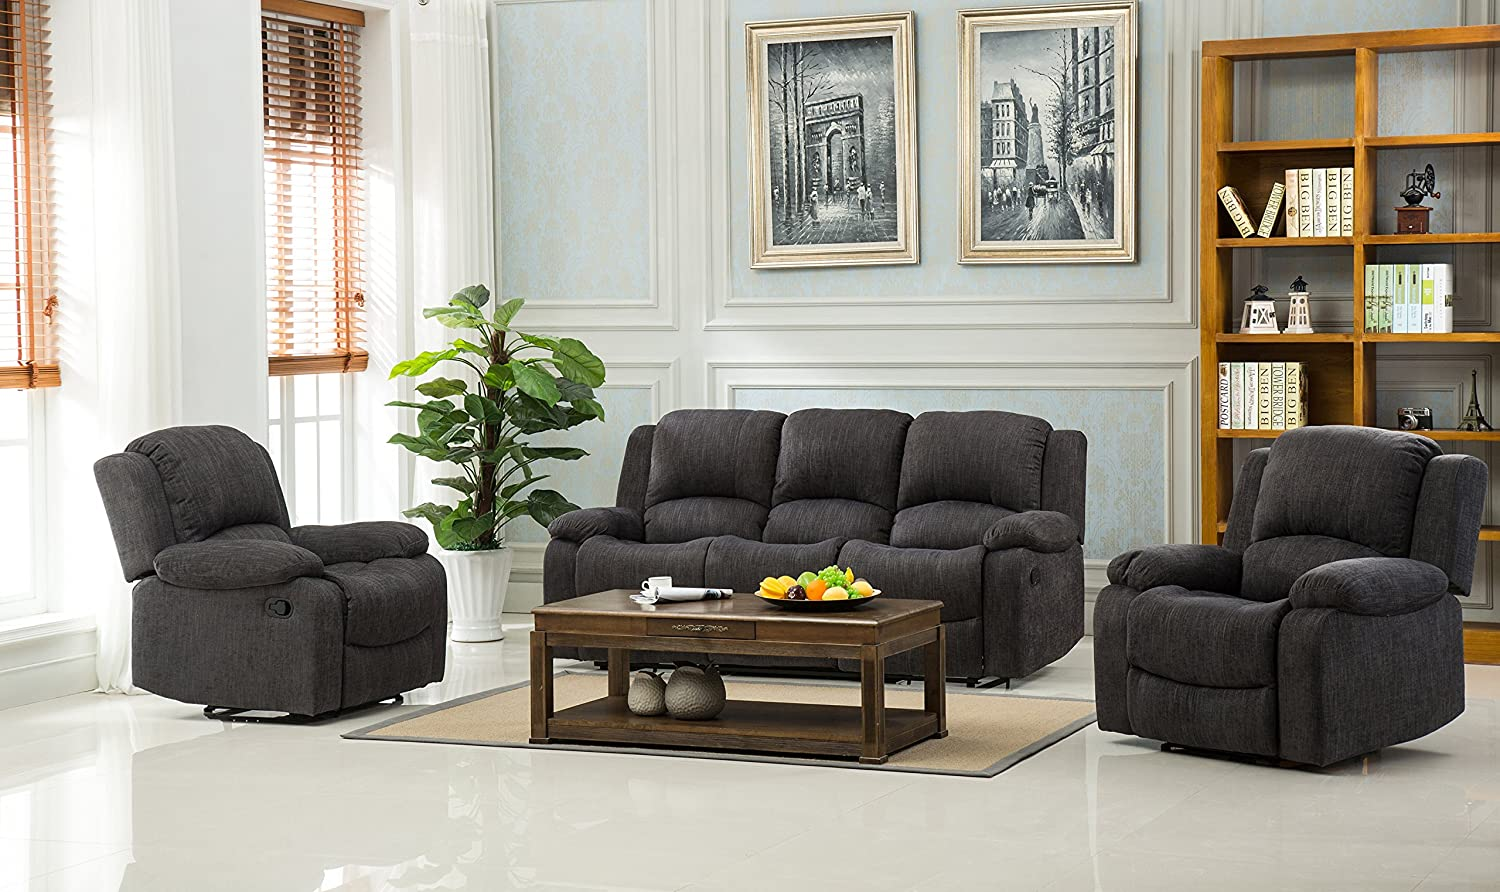 Lovesofas Lazy Boy Valencia 3 2 1 plazas sillón reclinable y ...